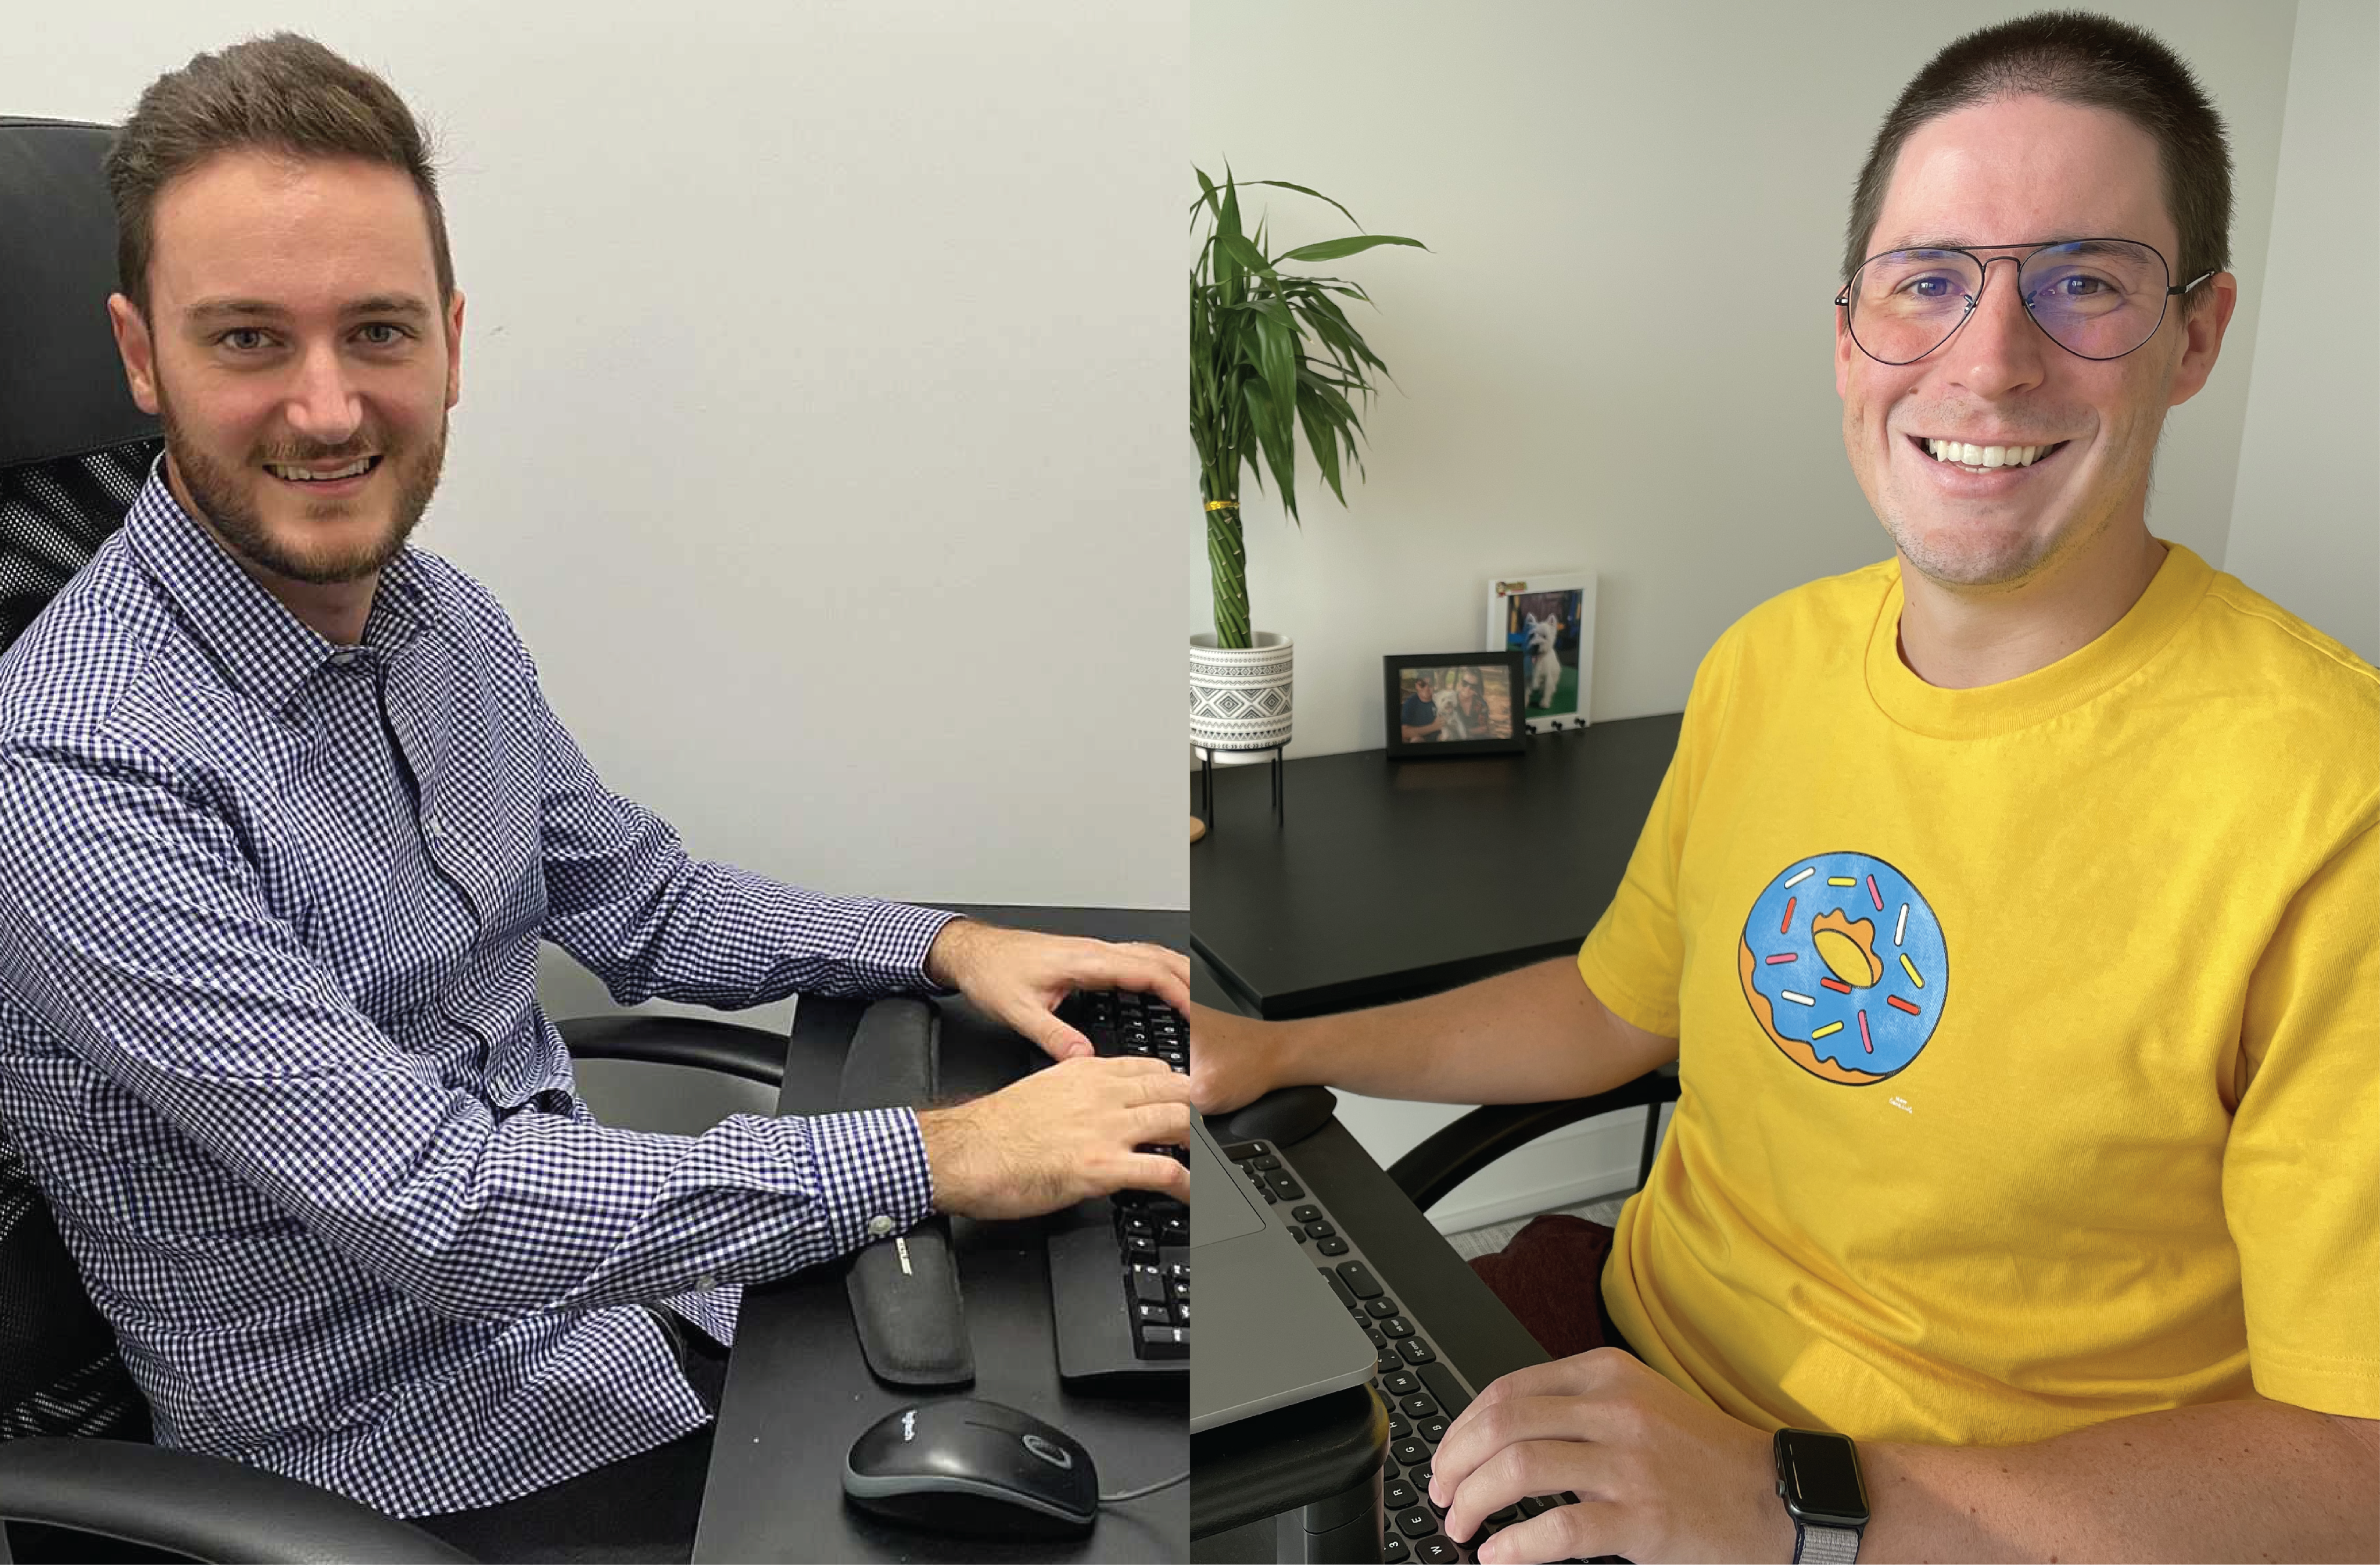 Luca and Tadeu sit at their workstations from home smiling